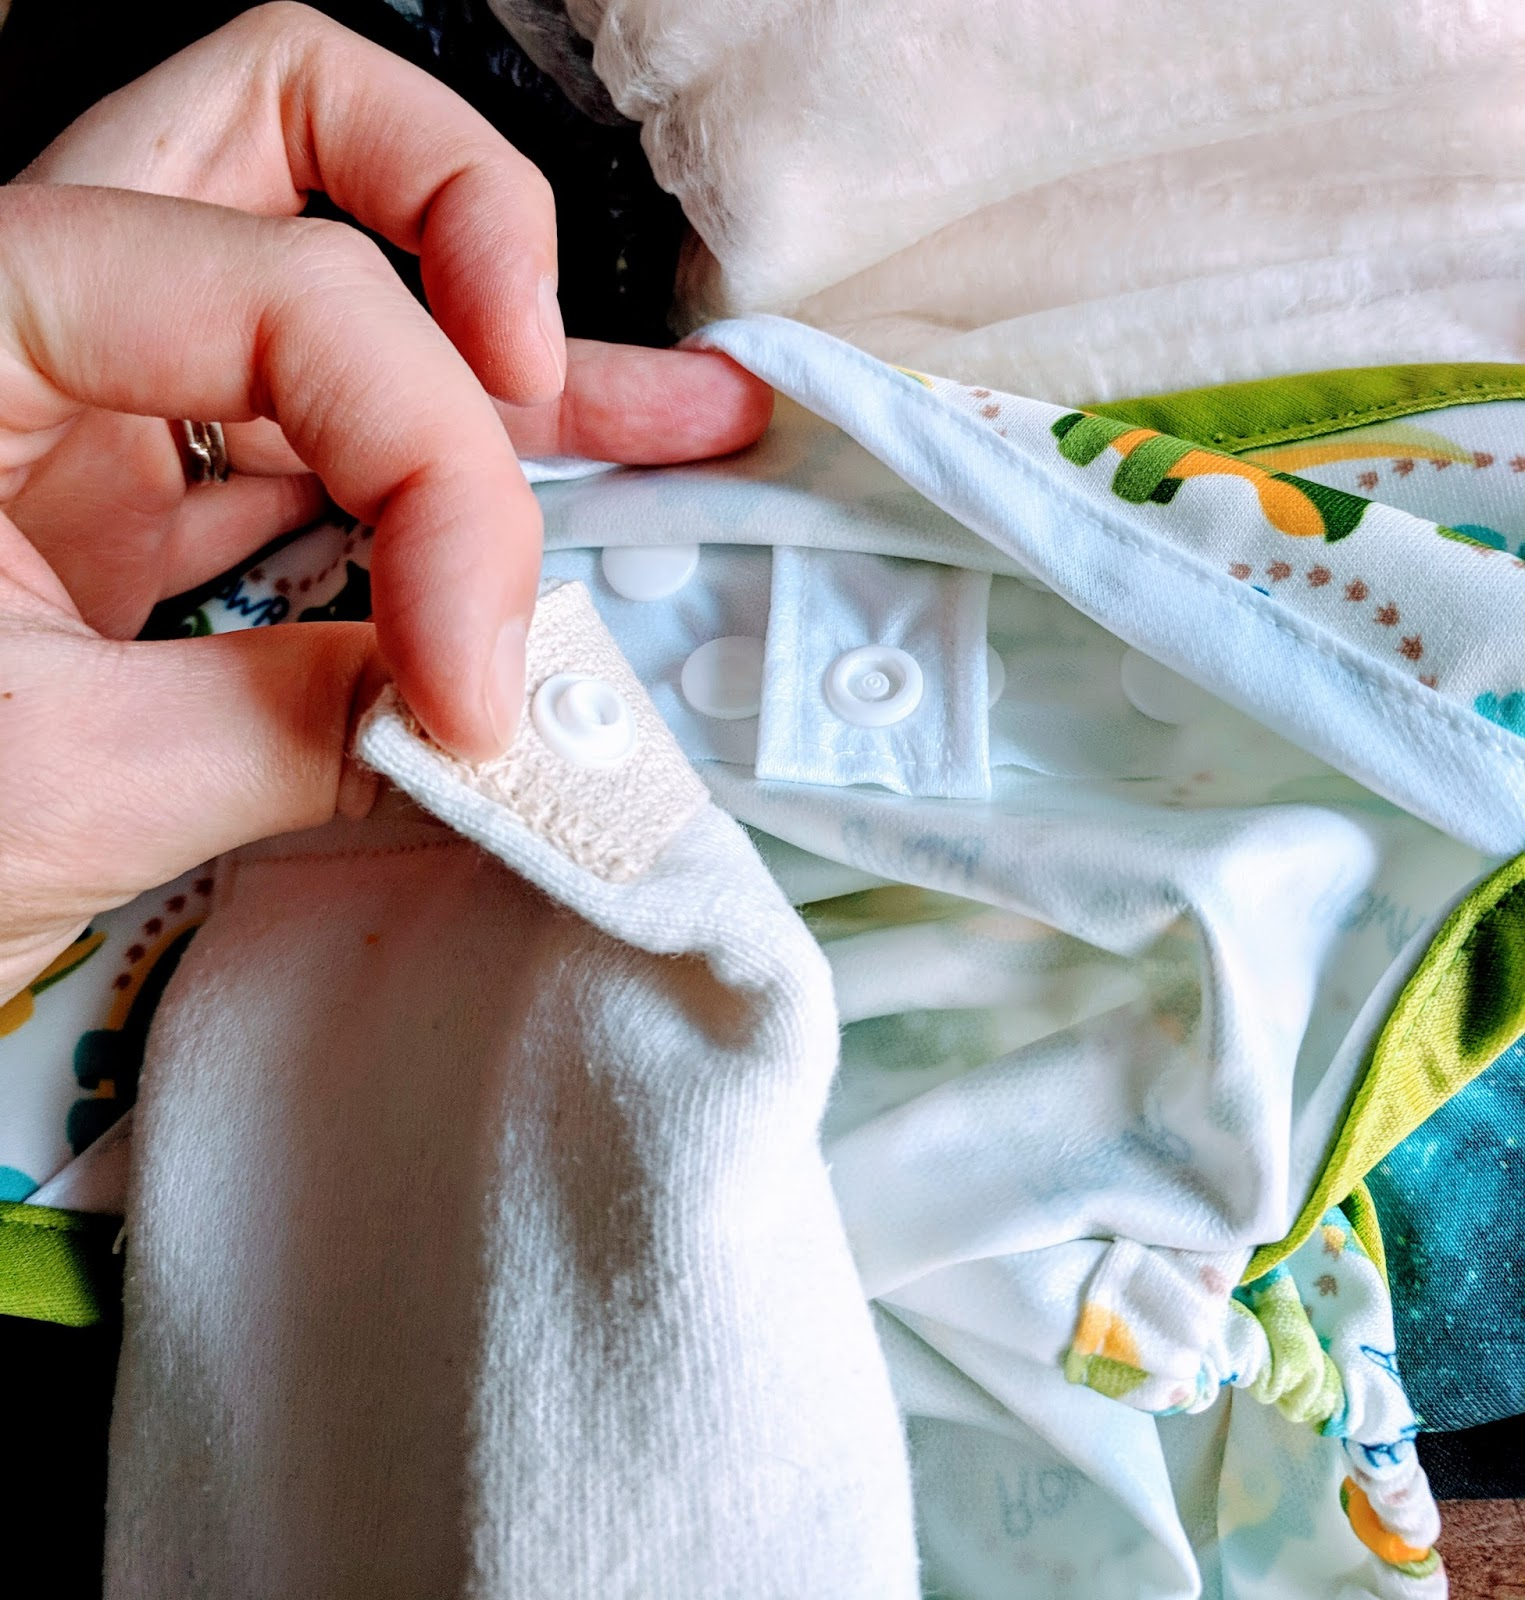 Tidy Tots - Tidy Tots is the healthiest choice for baby. Our No Fold diaper is made from a 100% organic hemp blend. Our Flushies are made from an organic blend too.Using natural and organic products next to your baby's delicate bum ensures that you are reducing their exposure to chemicals. Common sense indicates that baby's wet bottom sitting in chemicals is not the healthiest of choices. Happy days and peaceful nights. Our hemp diapers keep your baby dry and leak free, which makes for a content baby and delighted family.Hemp is an ideal choice for cloth diaper material because of its unparalleled absorbency and natural antibacterial properties which helps keep baby rash free.